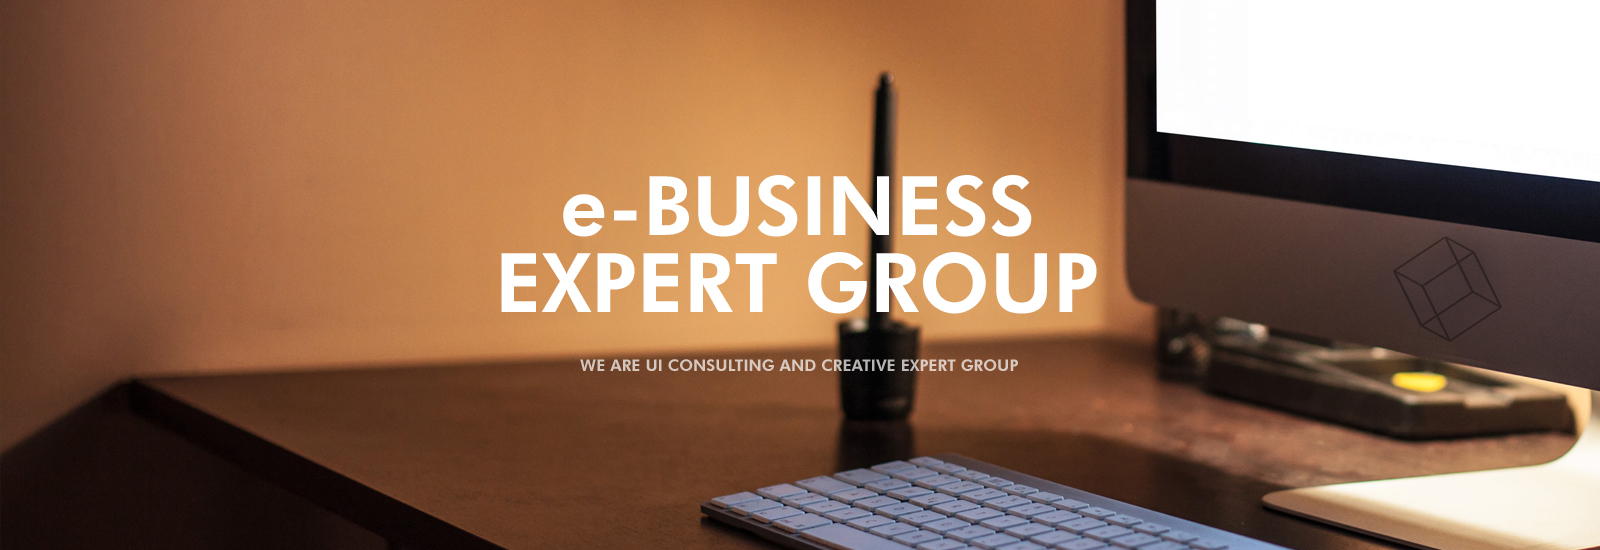 e-BUSINESS EXPERT GROUP WE ARE UI CONSULTING AND CREATIVE EXPERT GROUP